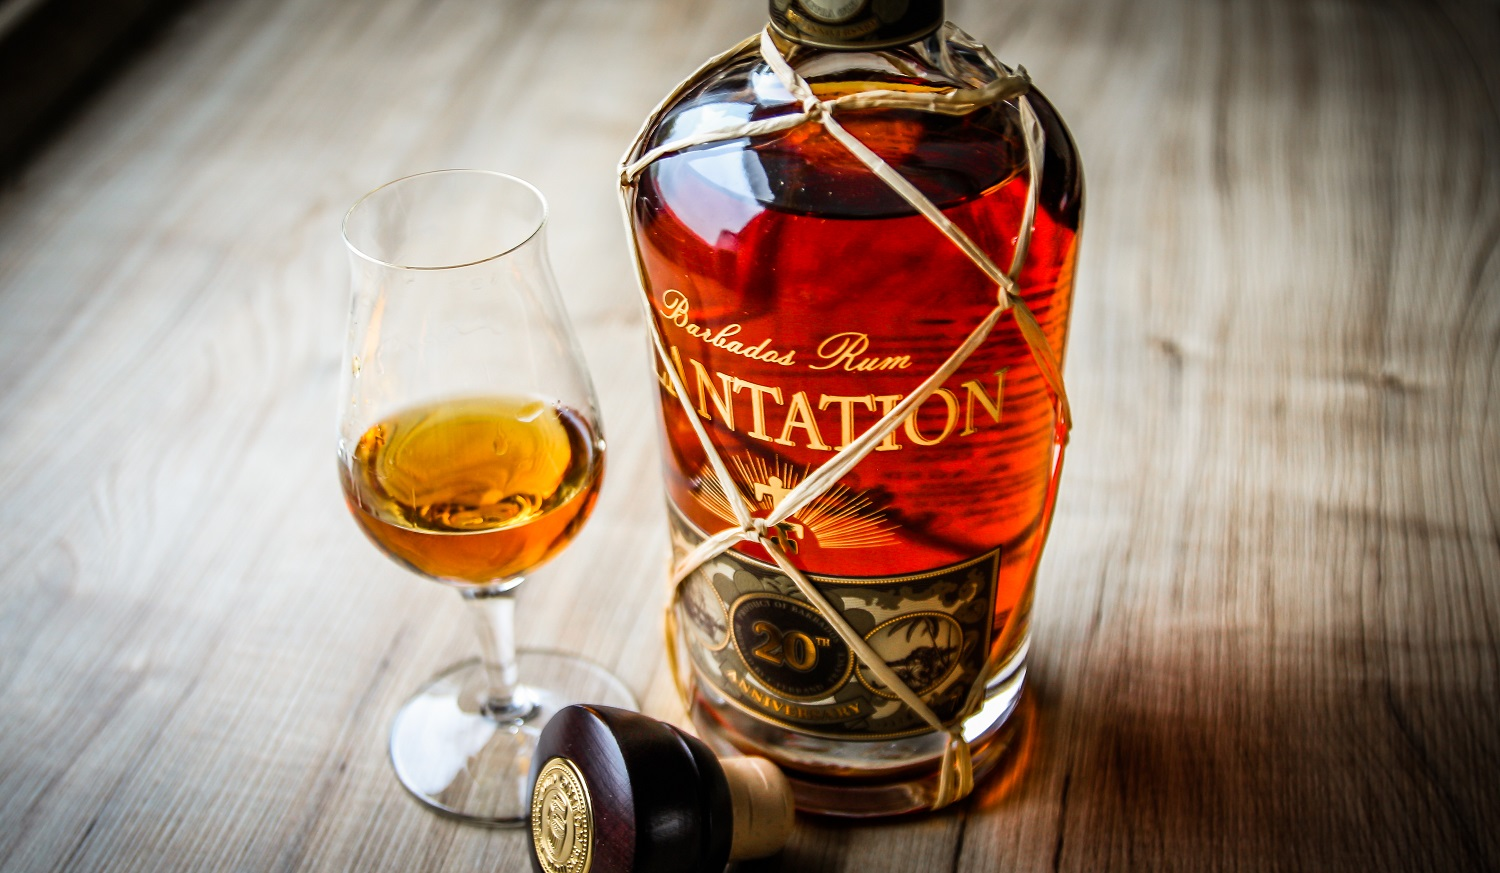 Plantation Barbados Extra Old 20th Anniversary Rum Tasting Bericht Plantation Barbados Extra Old 20th